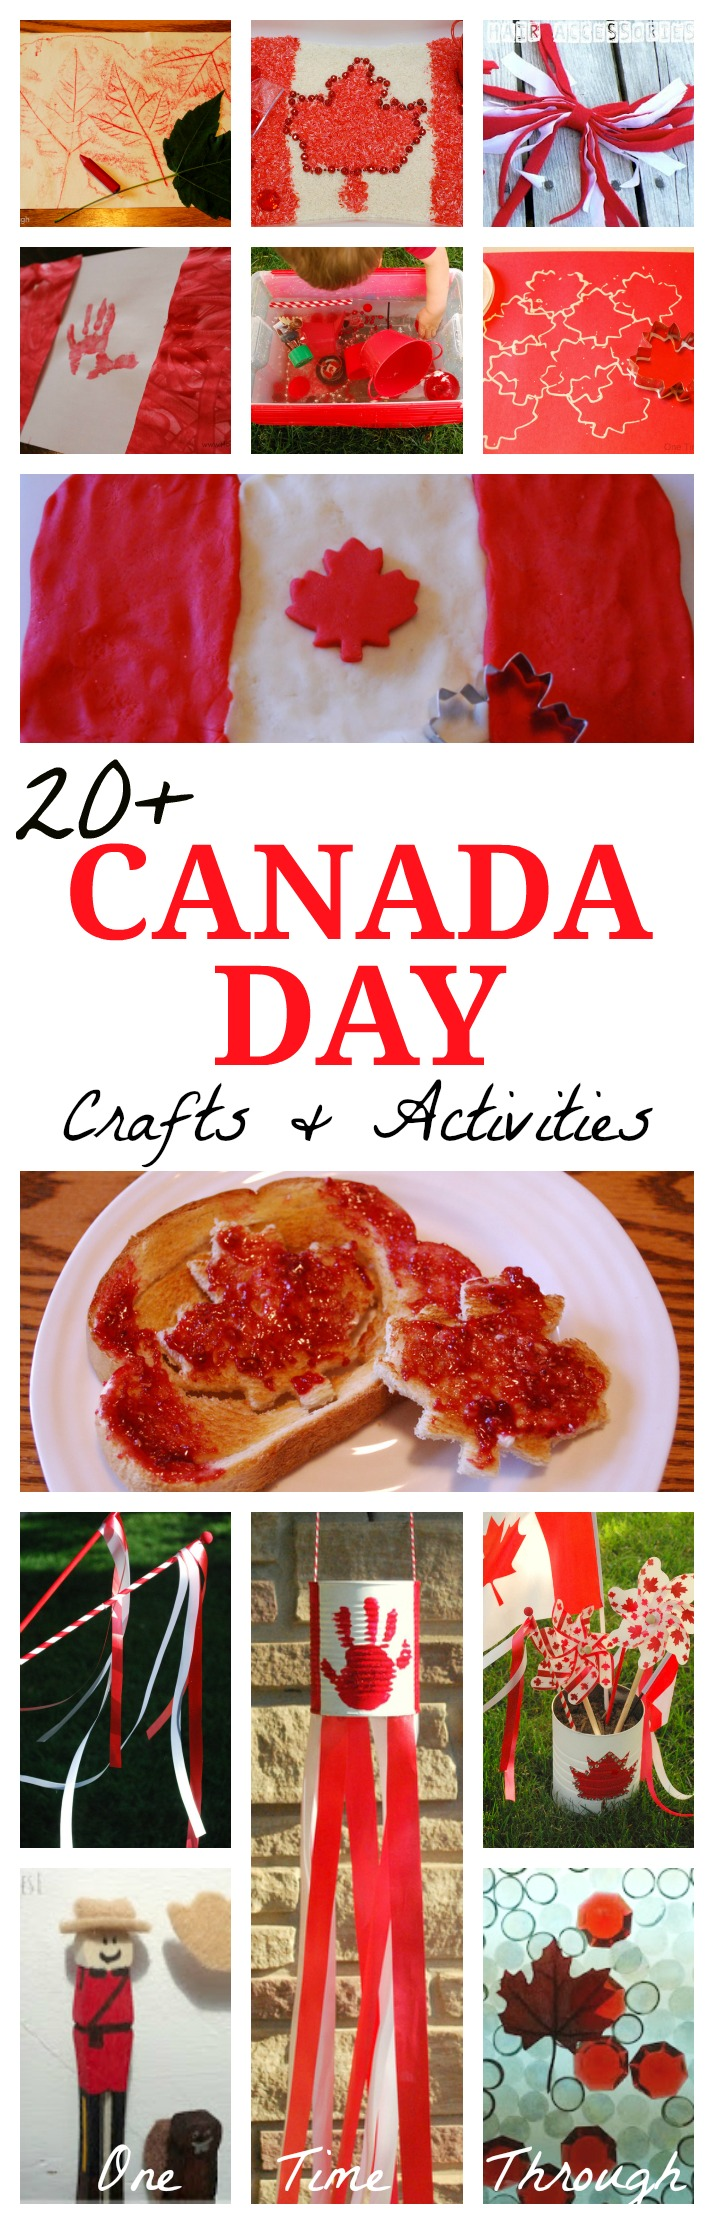 20+ Canada Day Crafts & Activities